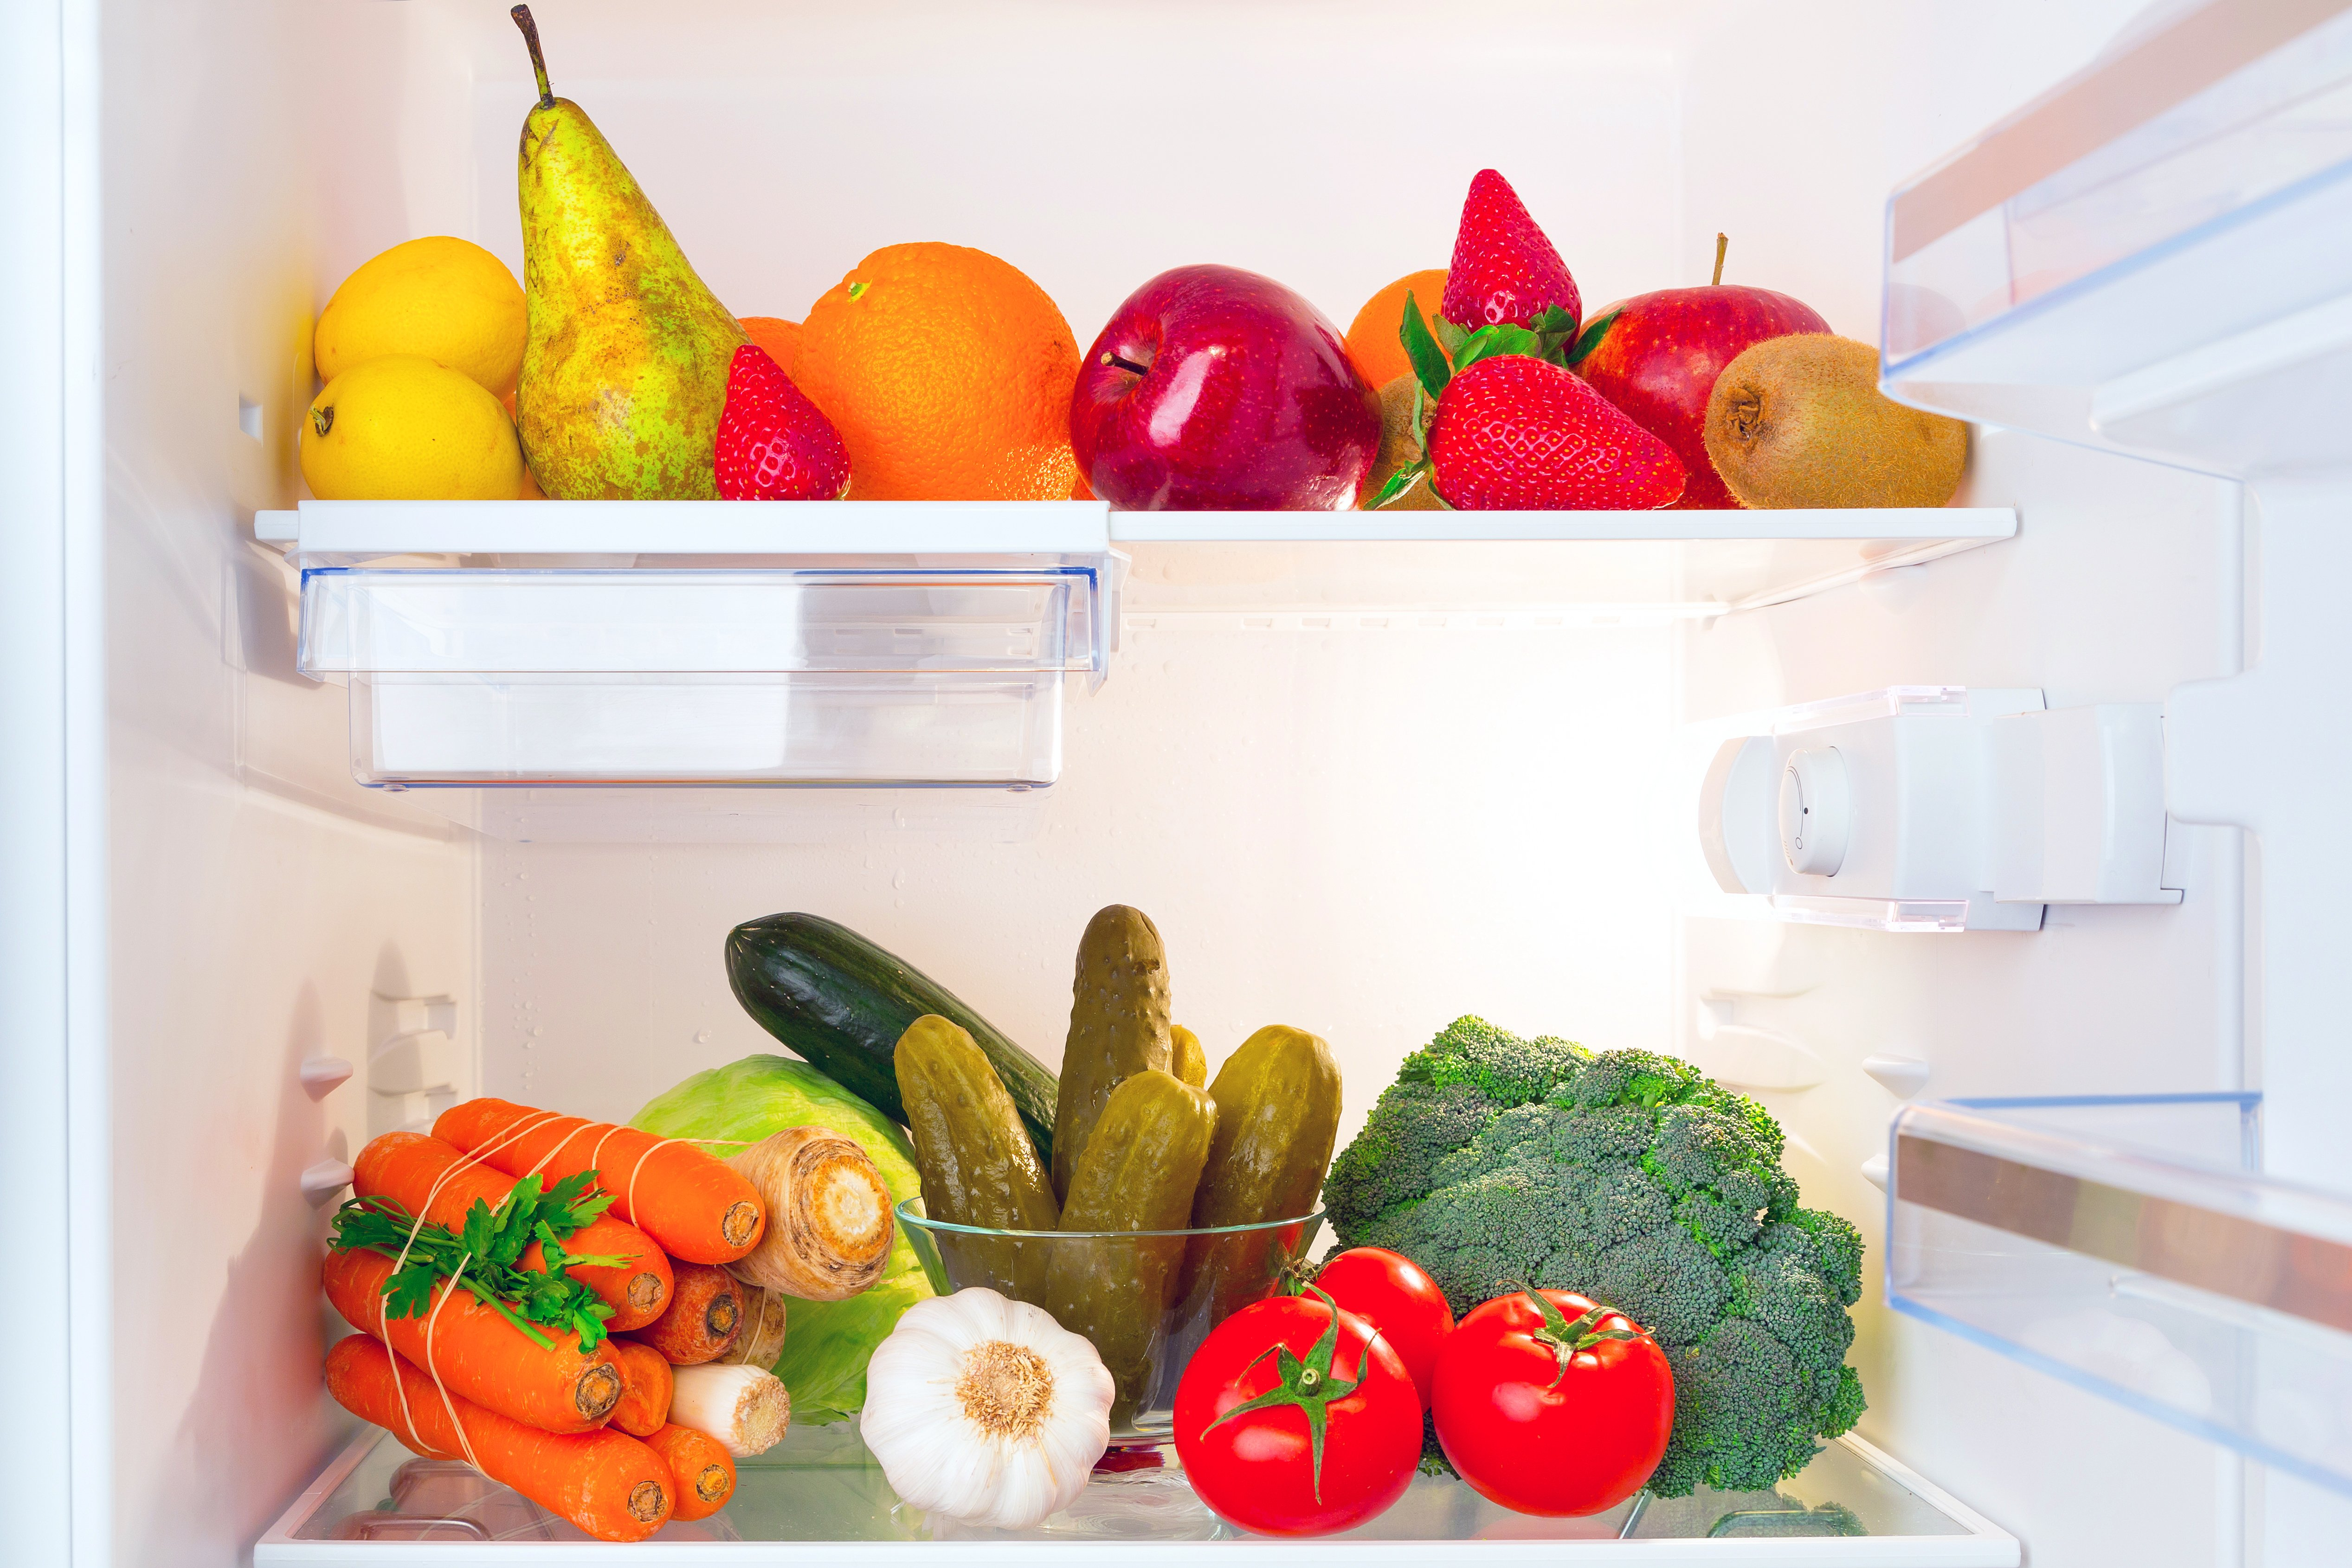 Fruits and vegetables in refrigerator   Shutterstock